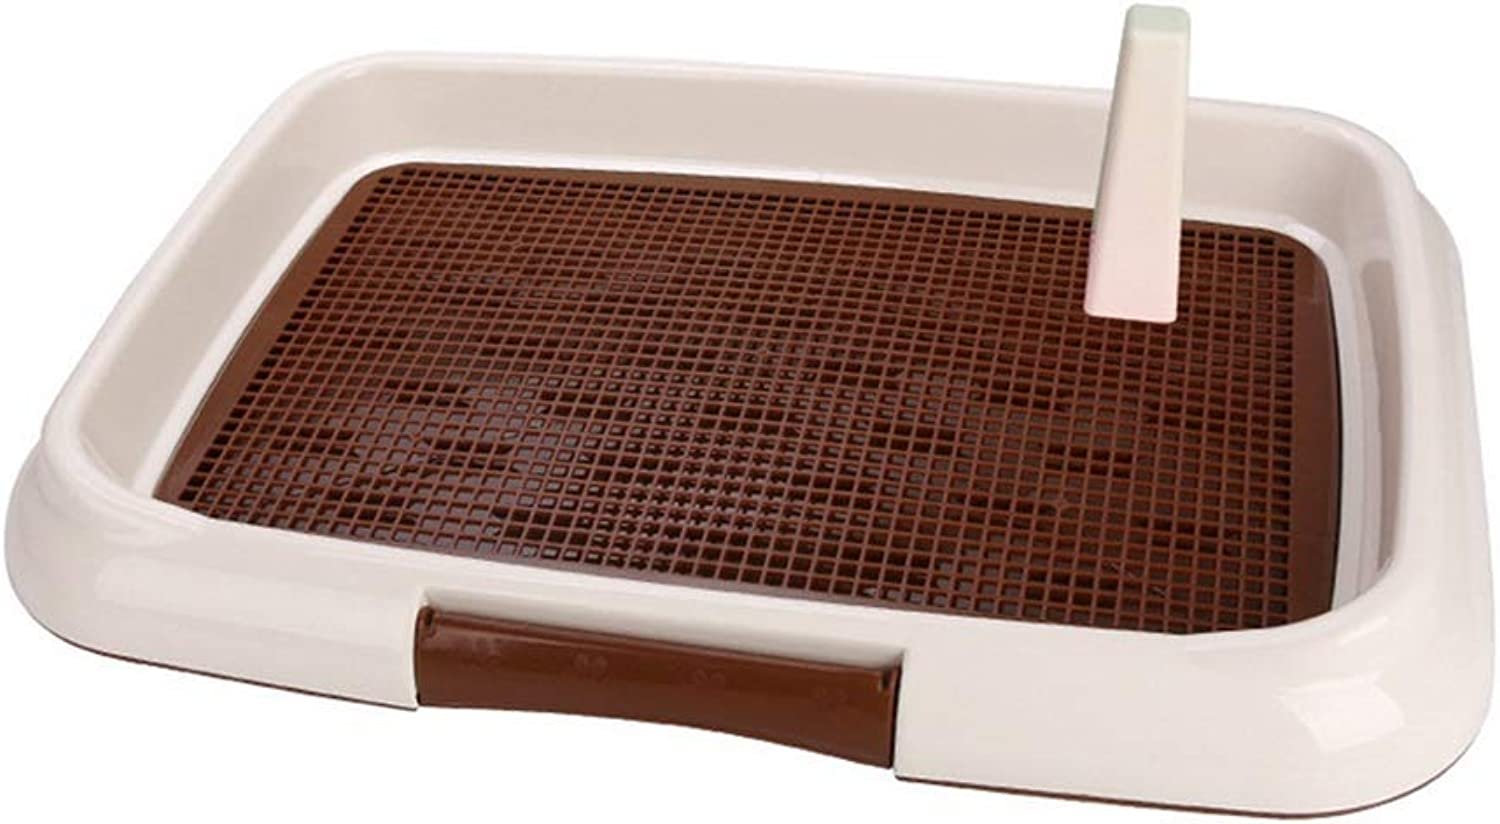 Ryan Dog Toilet, Indoor Training Suitable For Home Use Flat Toilet With Column Dog Urinal For Medium And Small Dogs Toilet(Brown, Pink, bluee) (color   BROWN, Size   L)